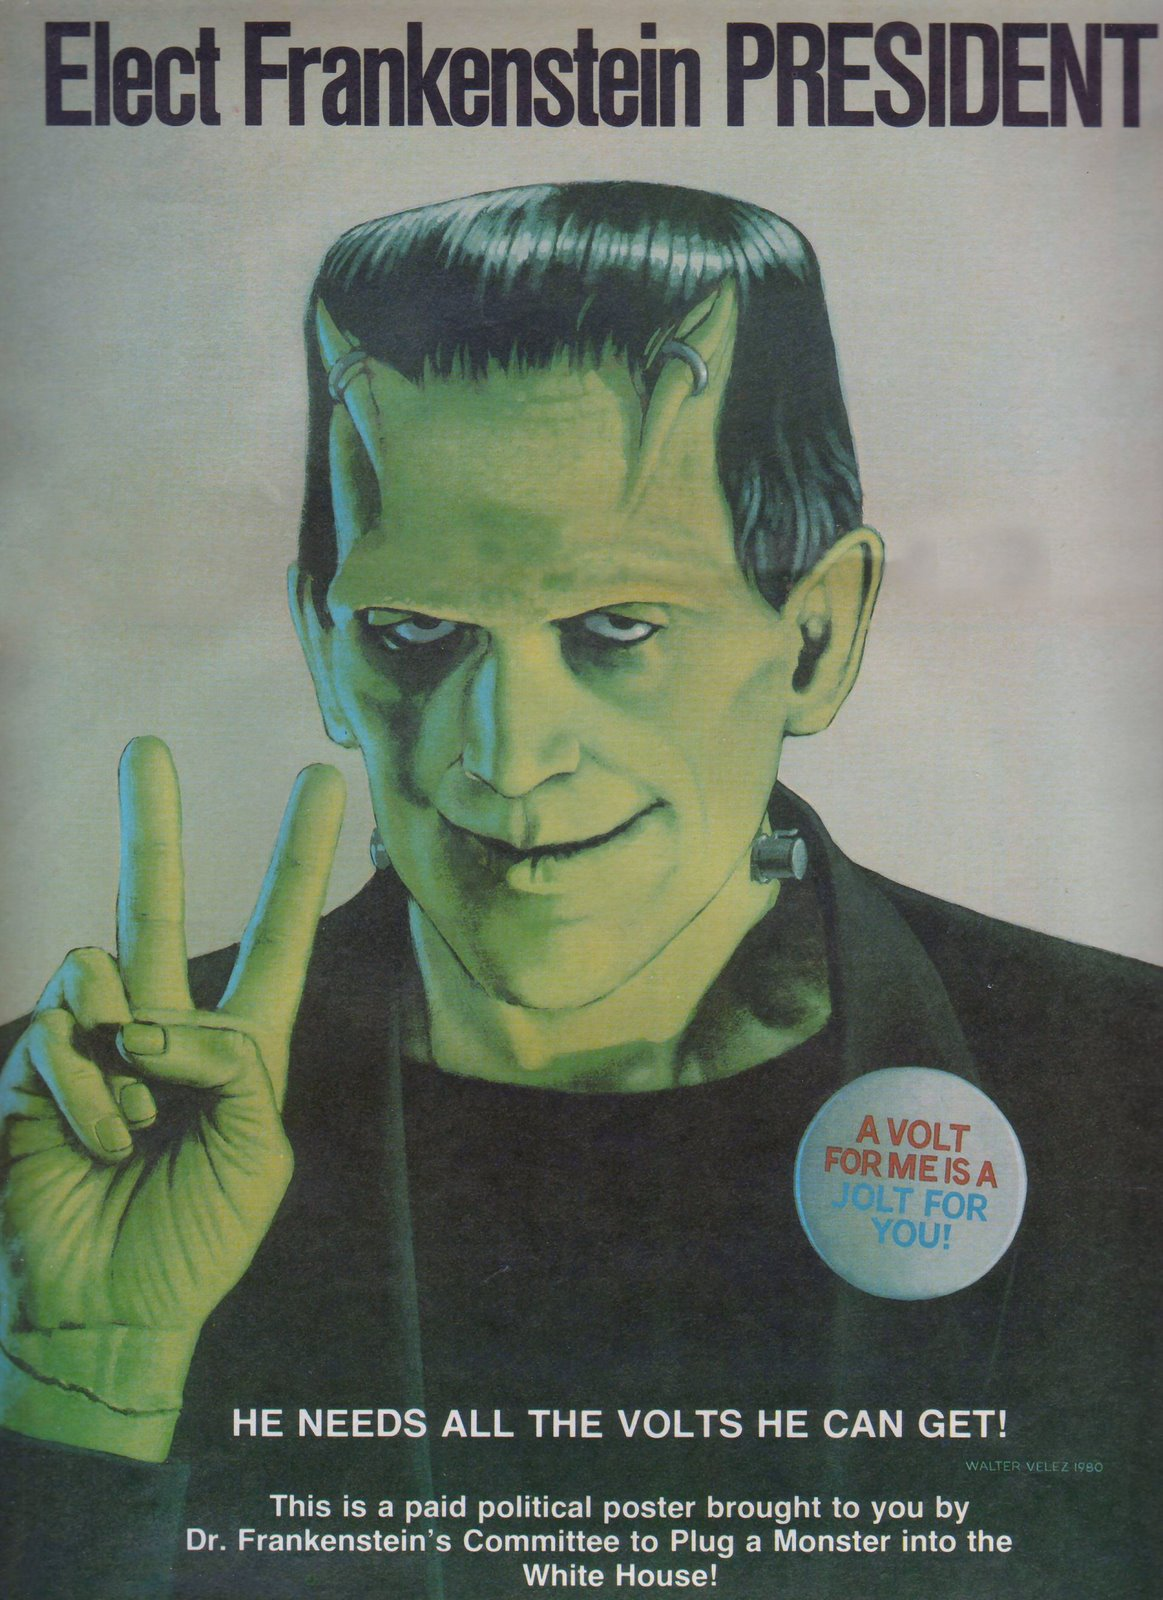 more blame happens novel frankenstein monster frankenstein The monster is more humane than his own creator because his immoral deeds are committed in response to society's corruption, while frankenstein's evil work .